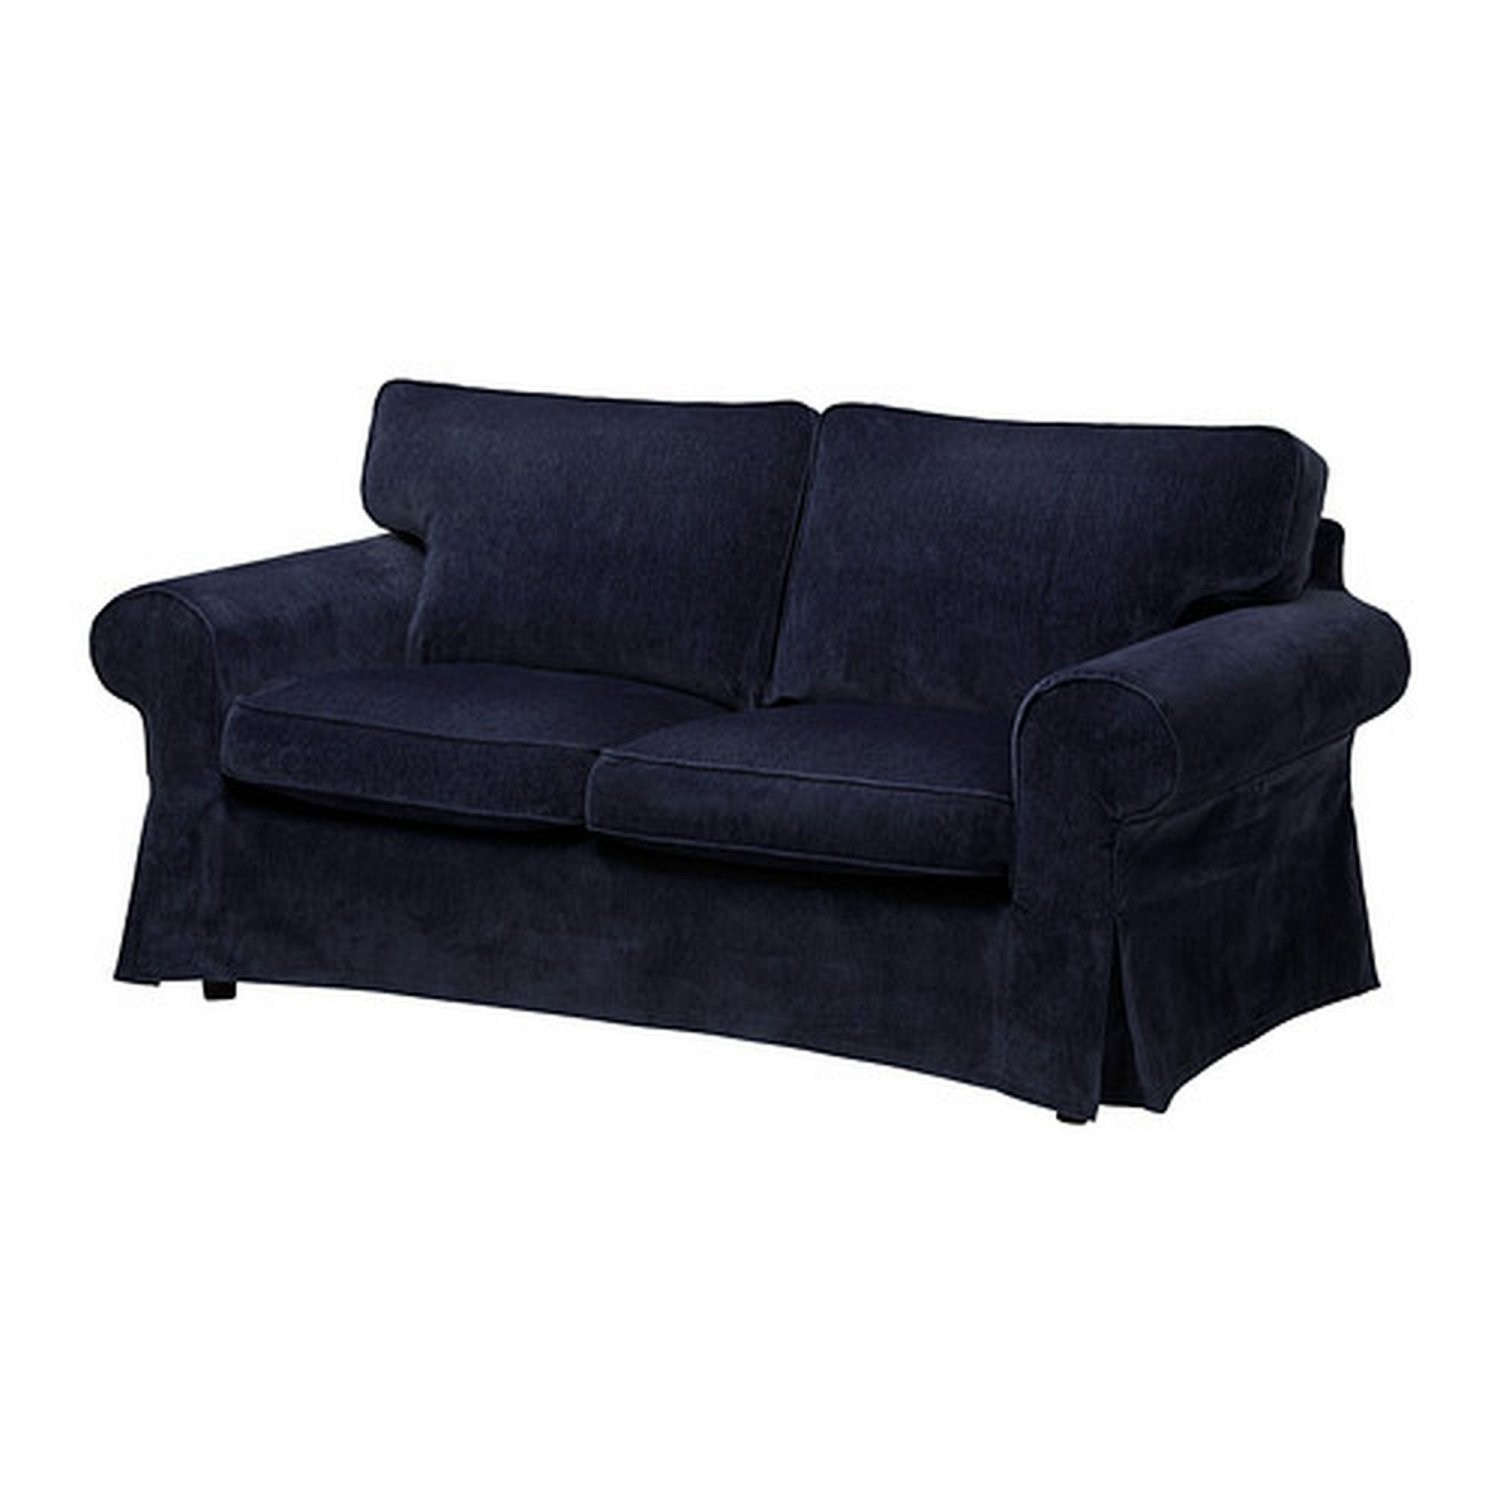 Ikea ektorp 2 seat sofa slipcover loveseat cover vellinge dark blue Loveseat slip cover